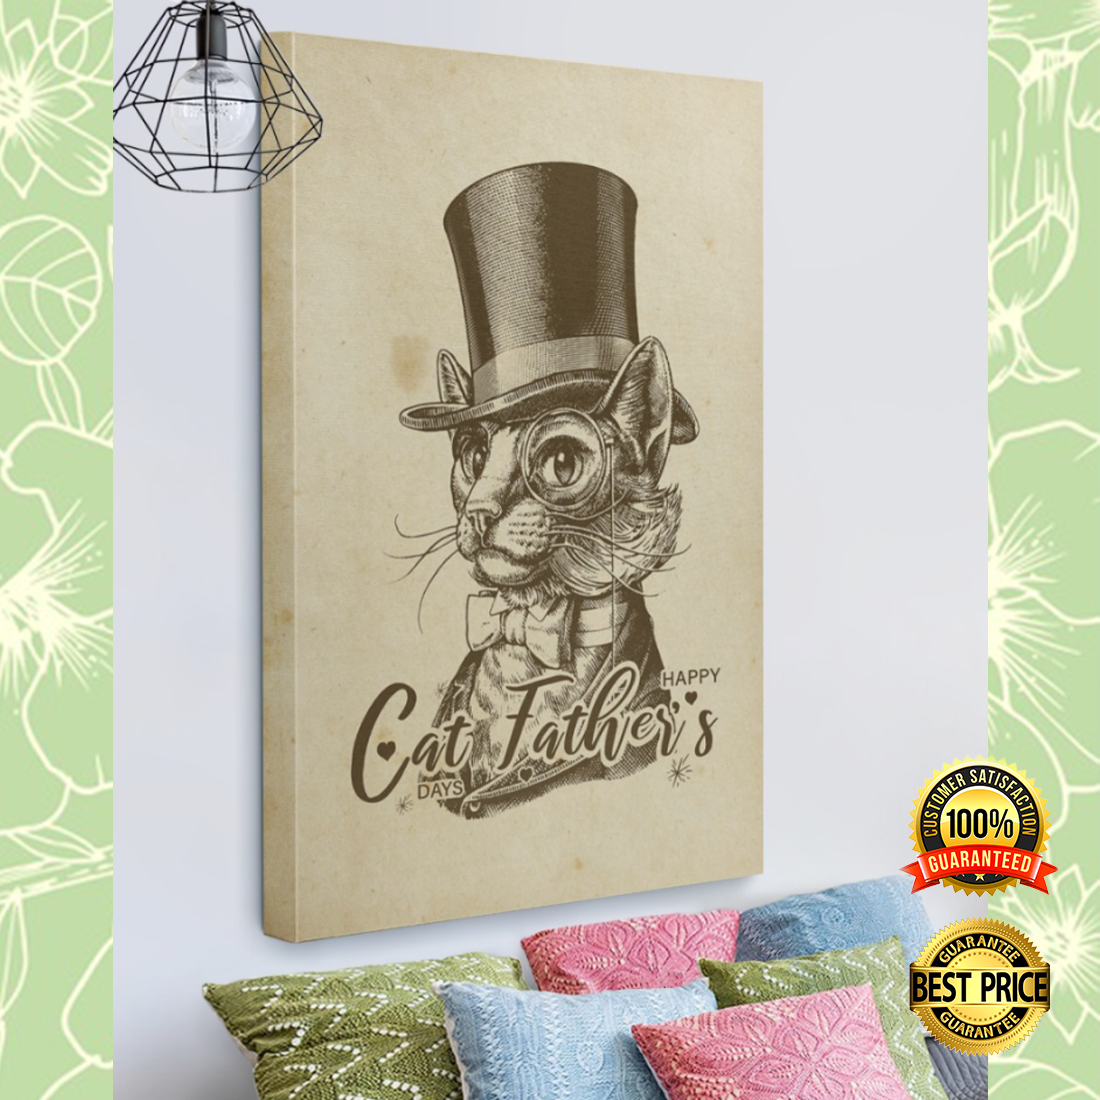 HAPPY CAT FATHER'S DAYS CANVAS 6